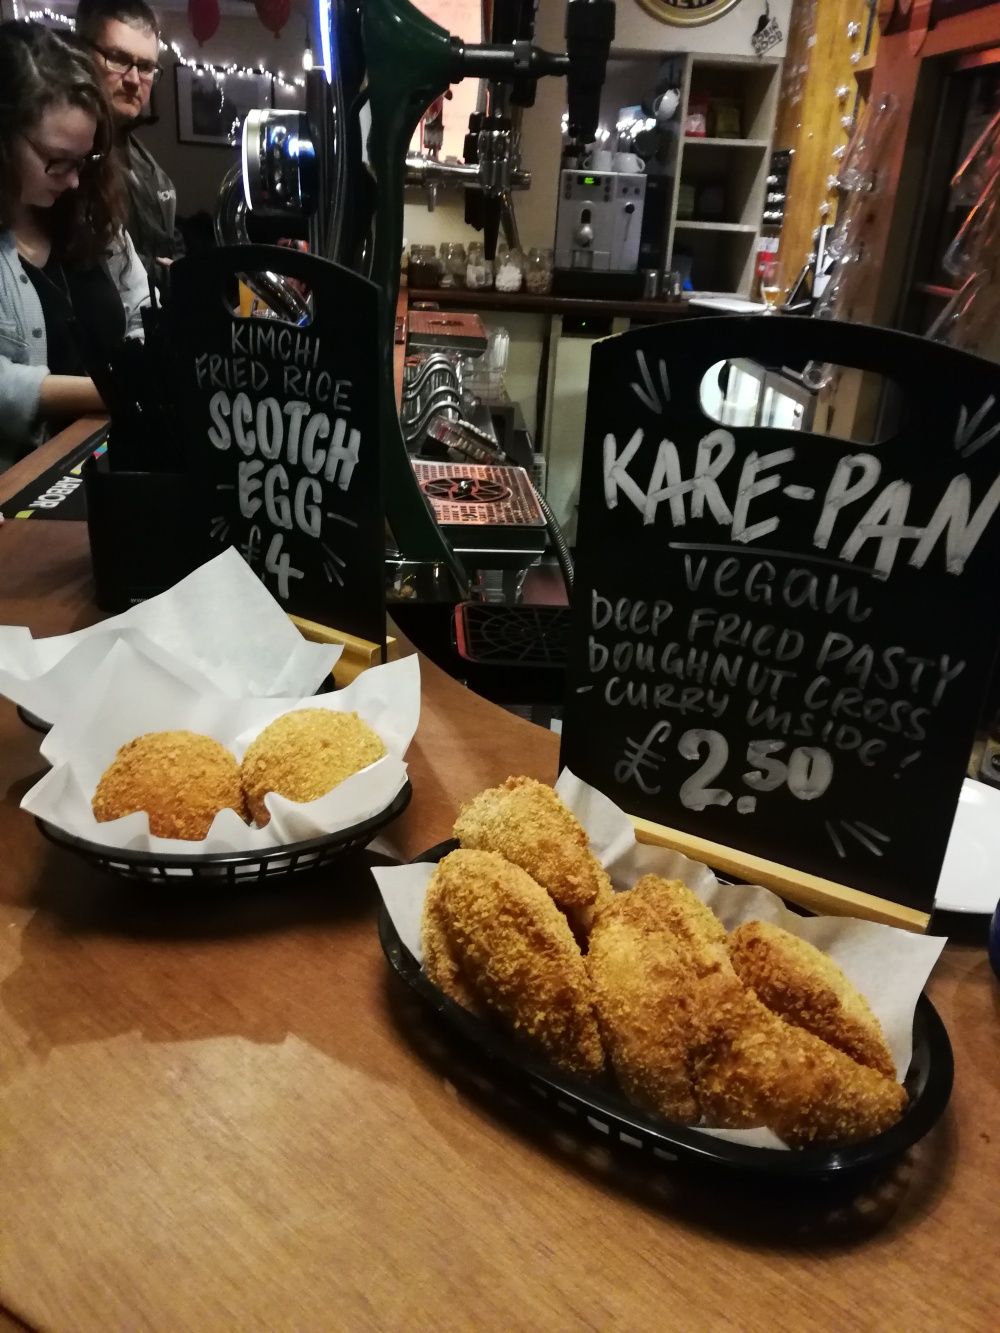 Bar snacks - kimchi scotch eggs and kare-pan